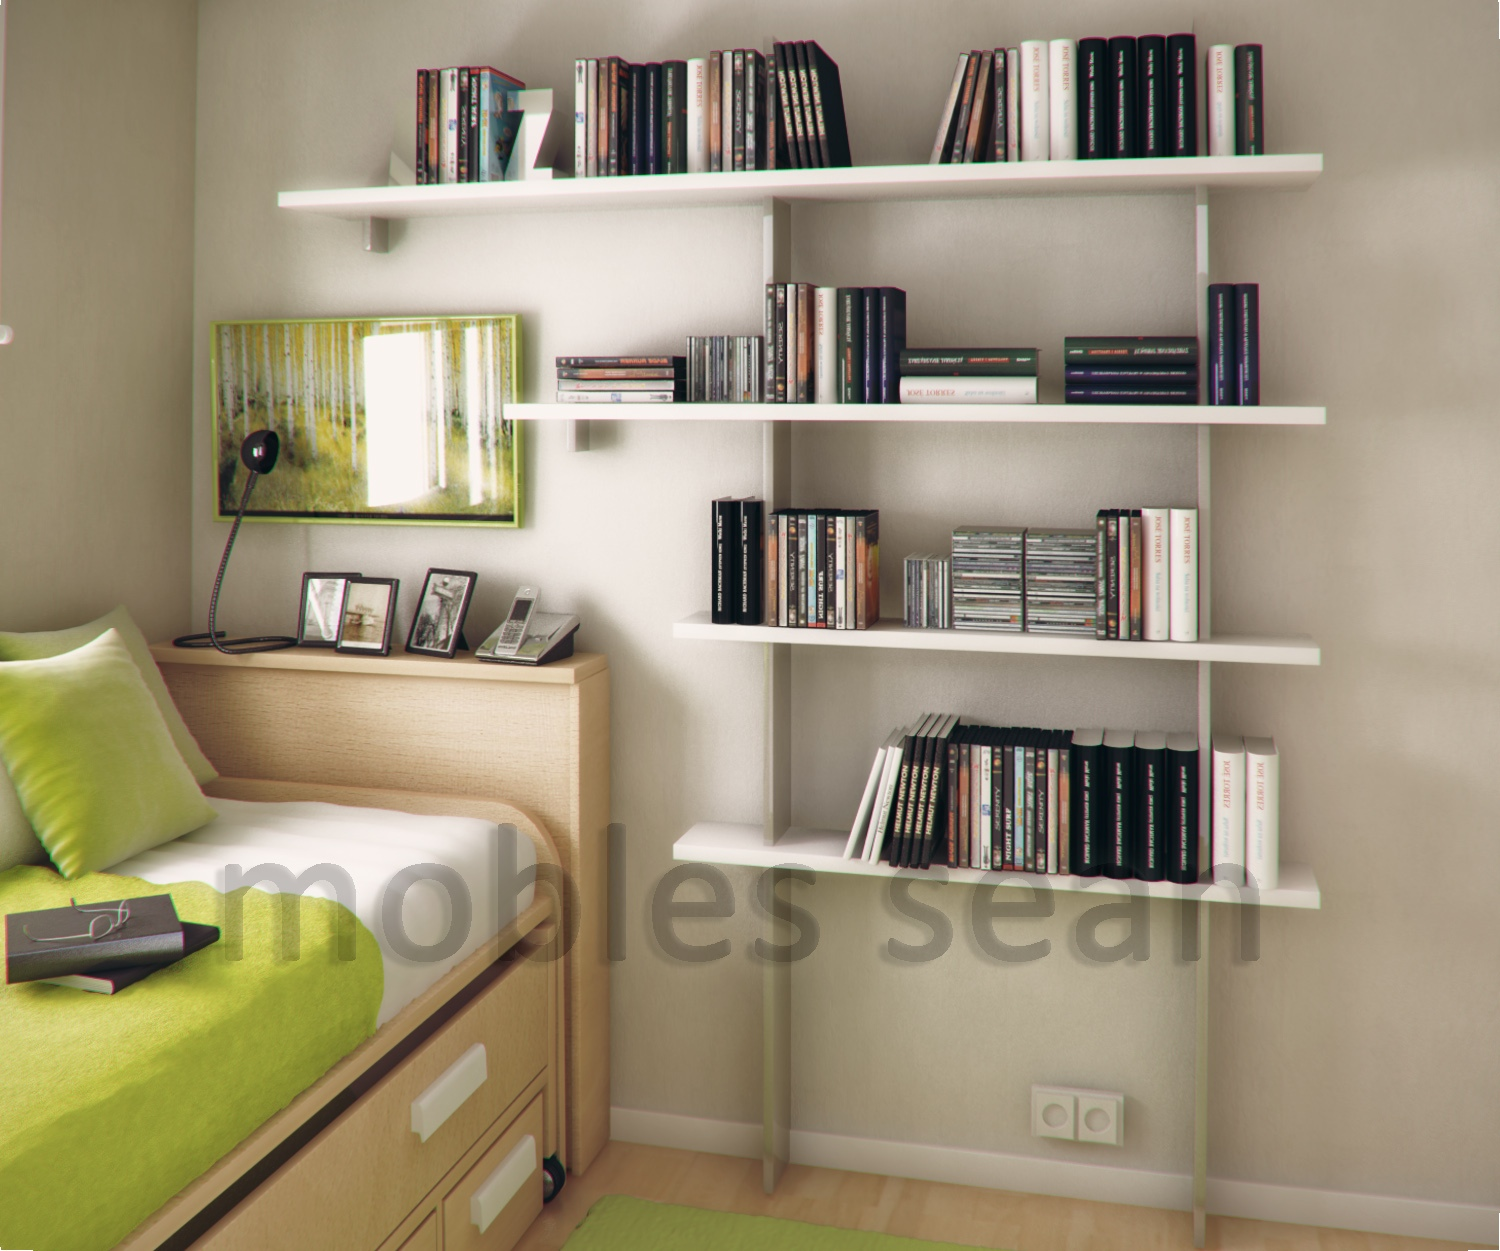 Ordinaire Space Saving Designs For Small Kidsu0027 Rooms